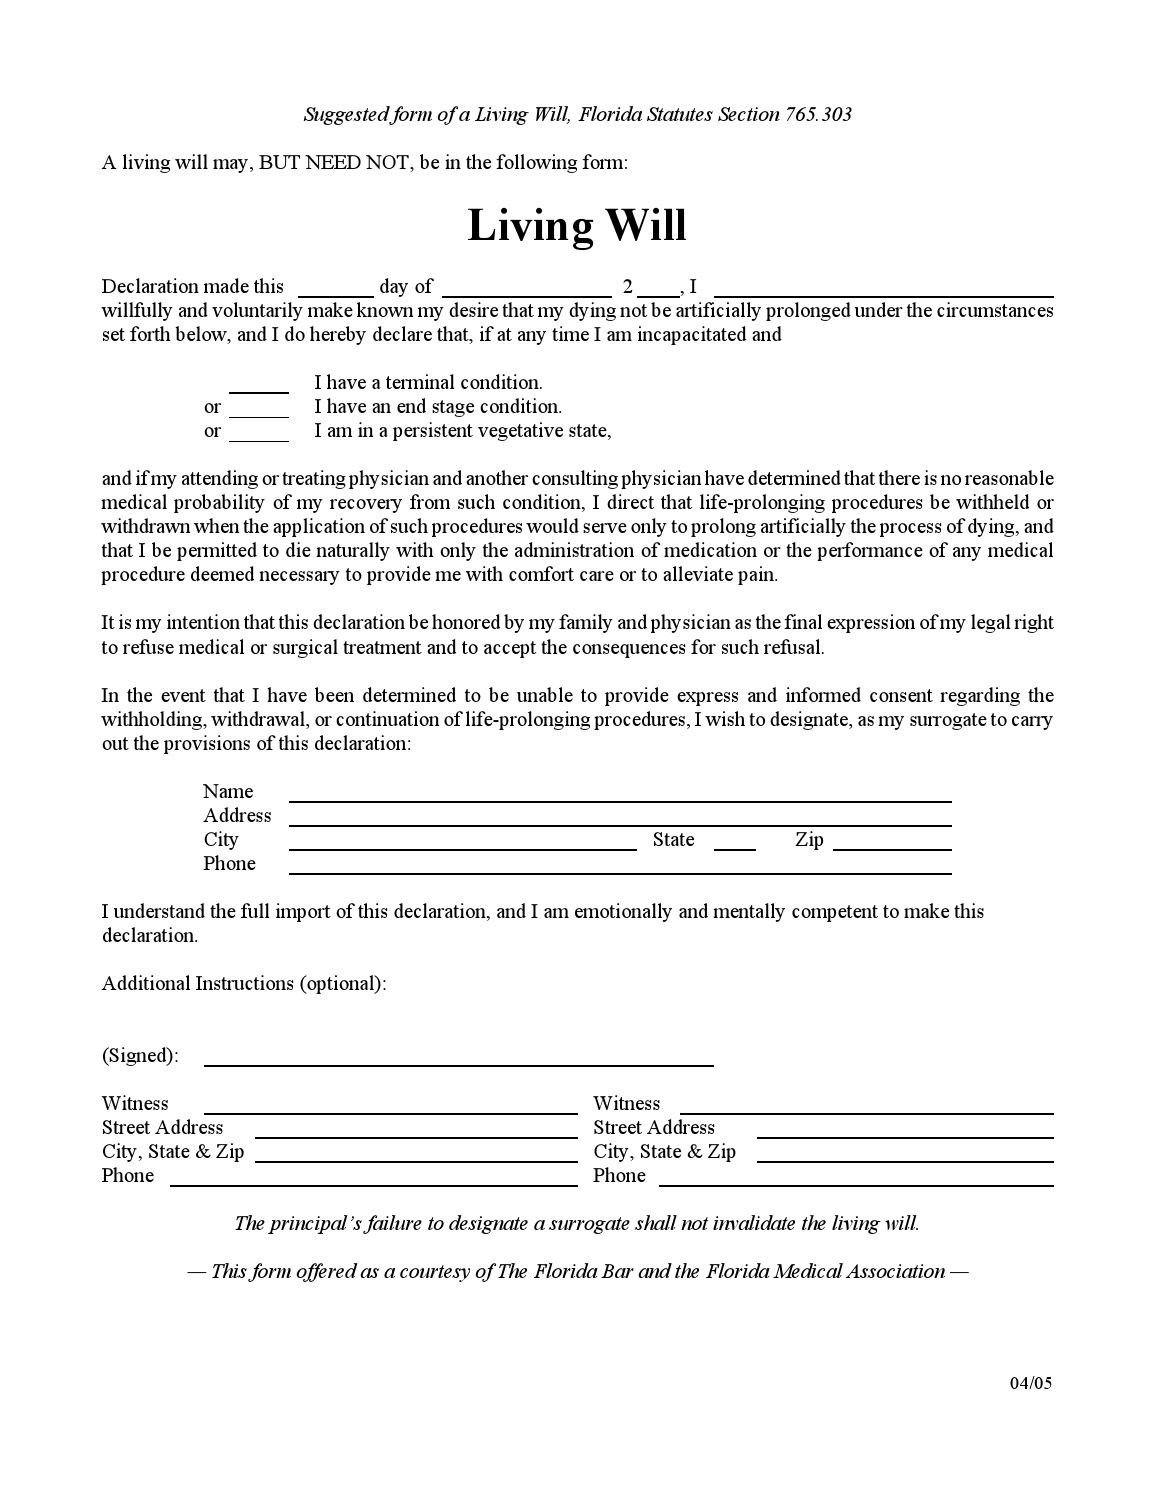 Free Florida Wills Template Florida Living Will by Wfla Newschannel8 issuu